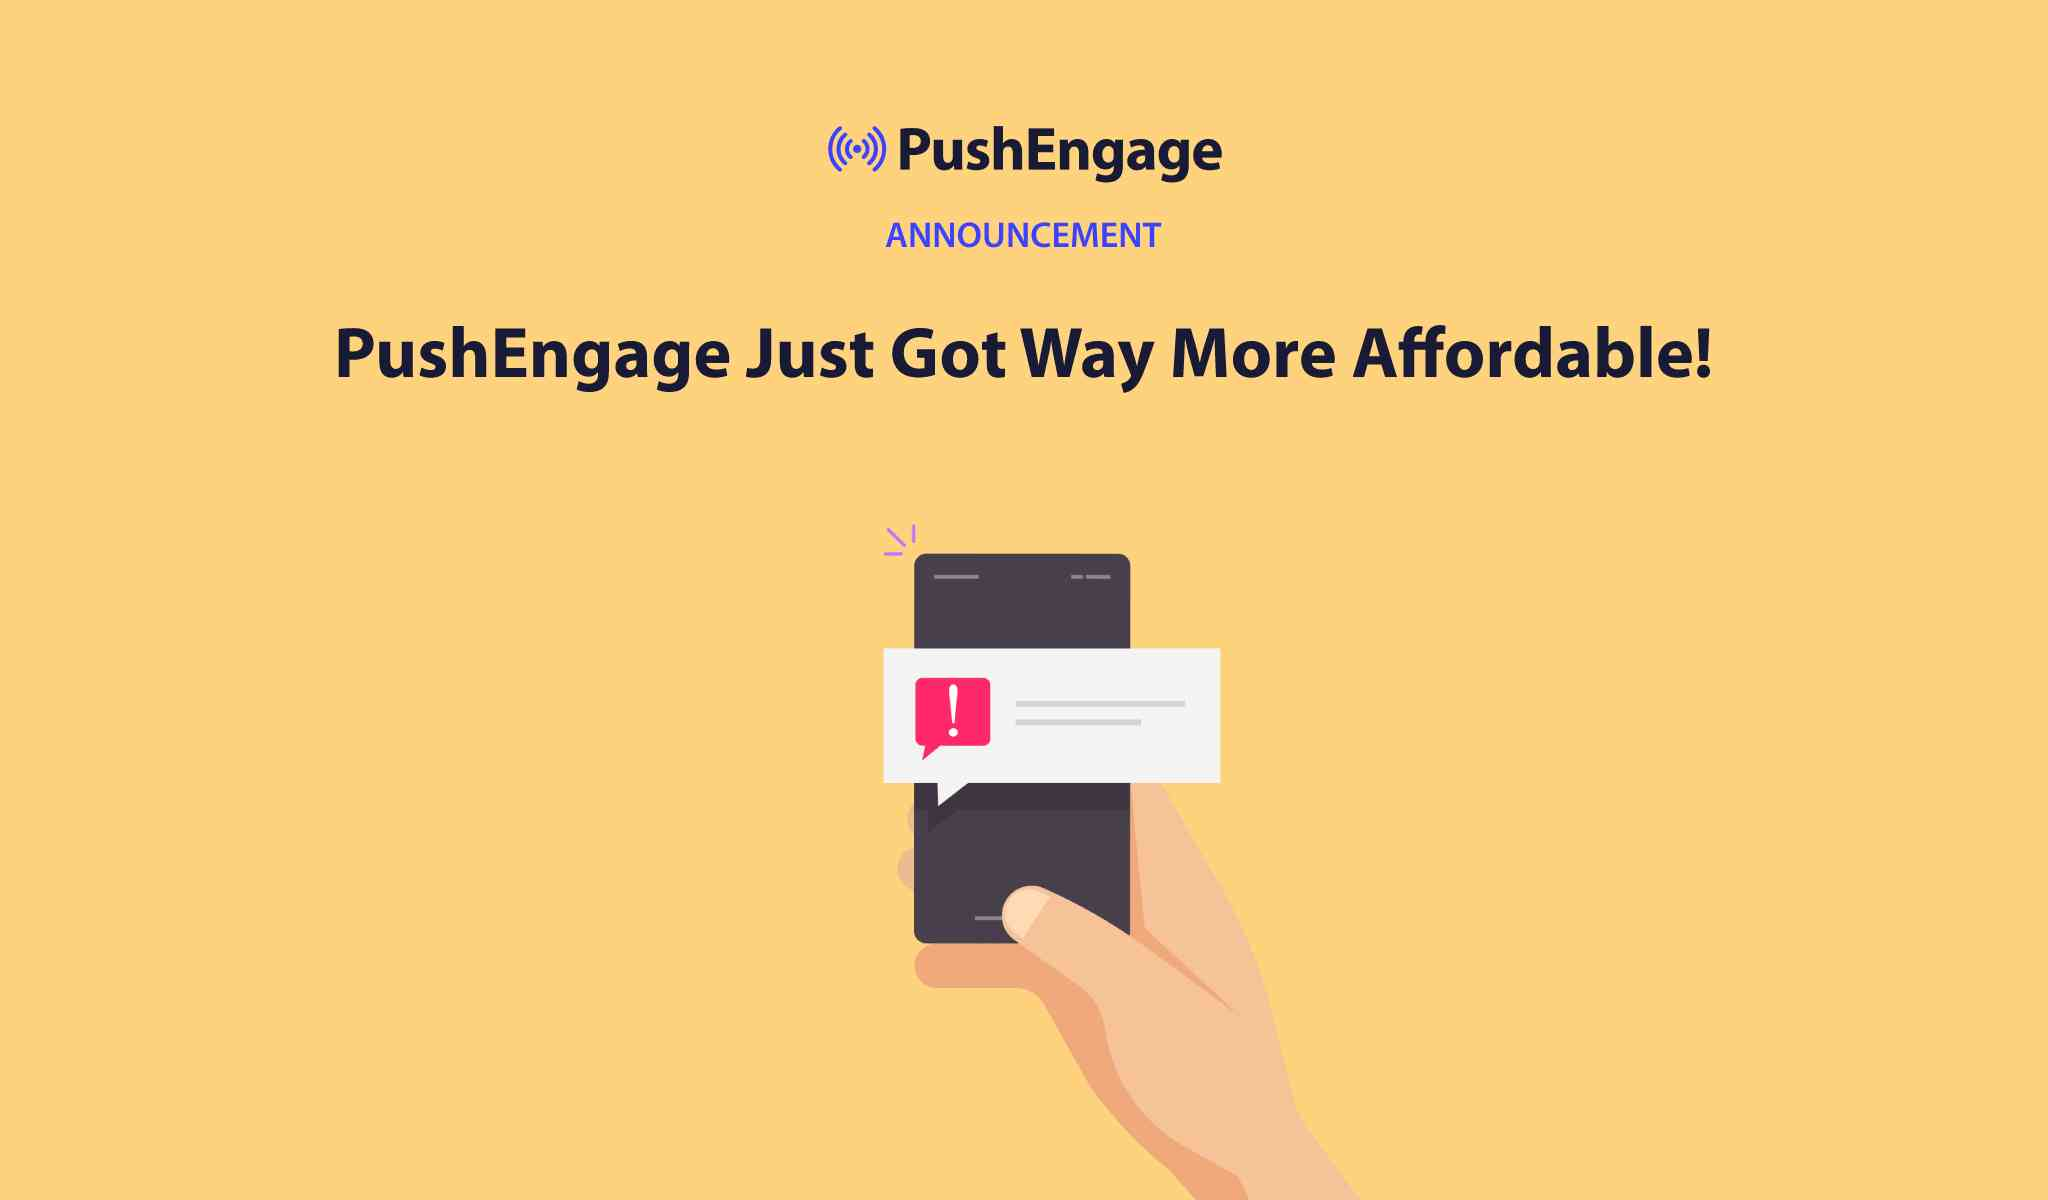 Announcement: PushEngage Just Got Way More Affordable